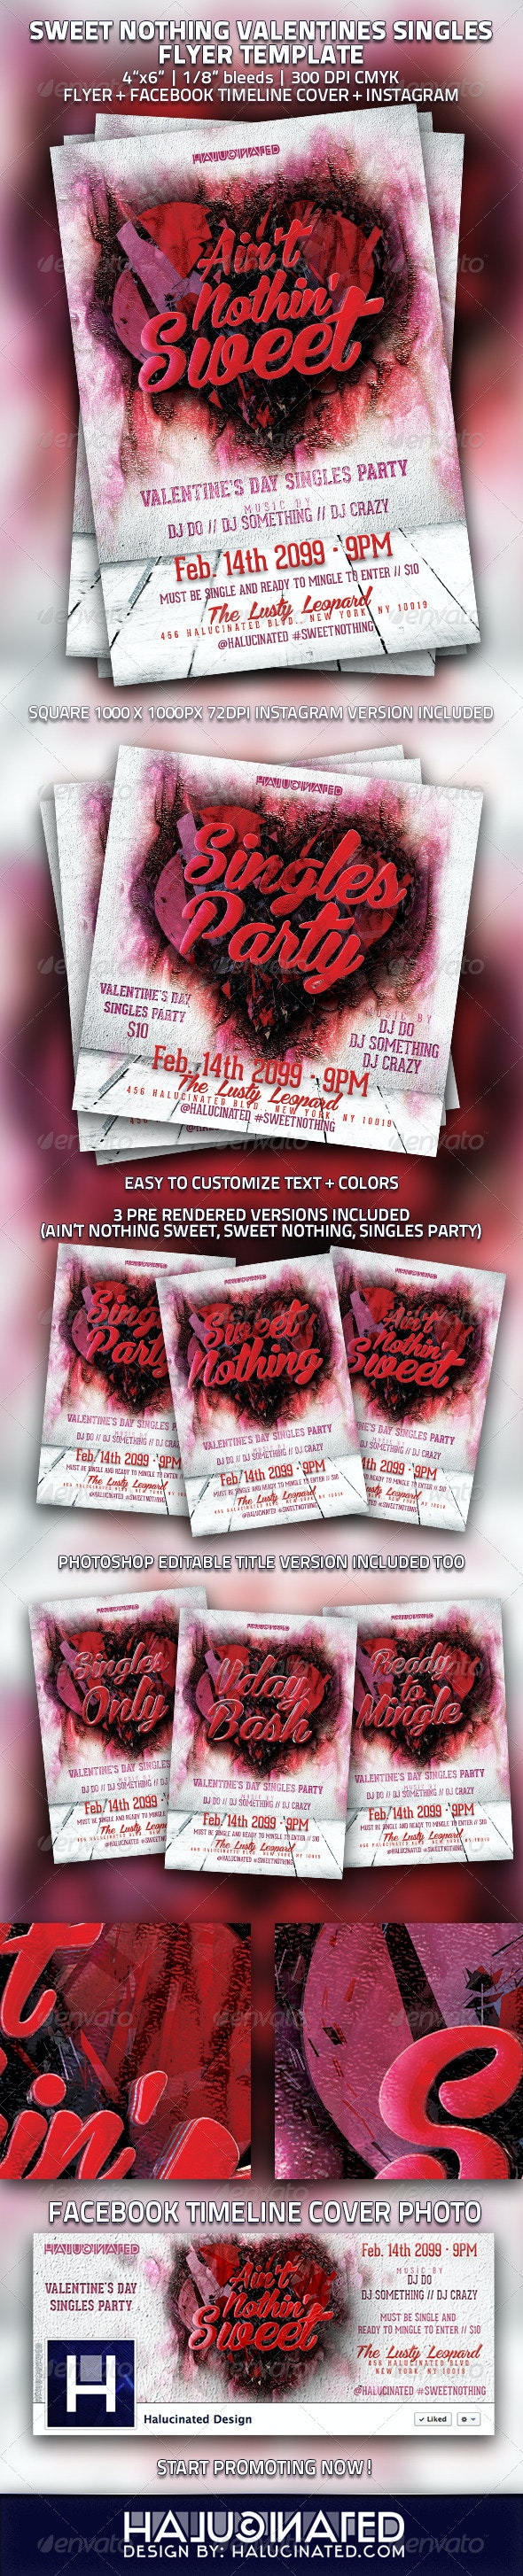 Sweet Nothing Valentines Singles Flyer Template - Holidays Events